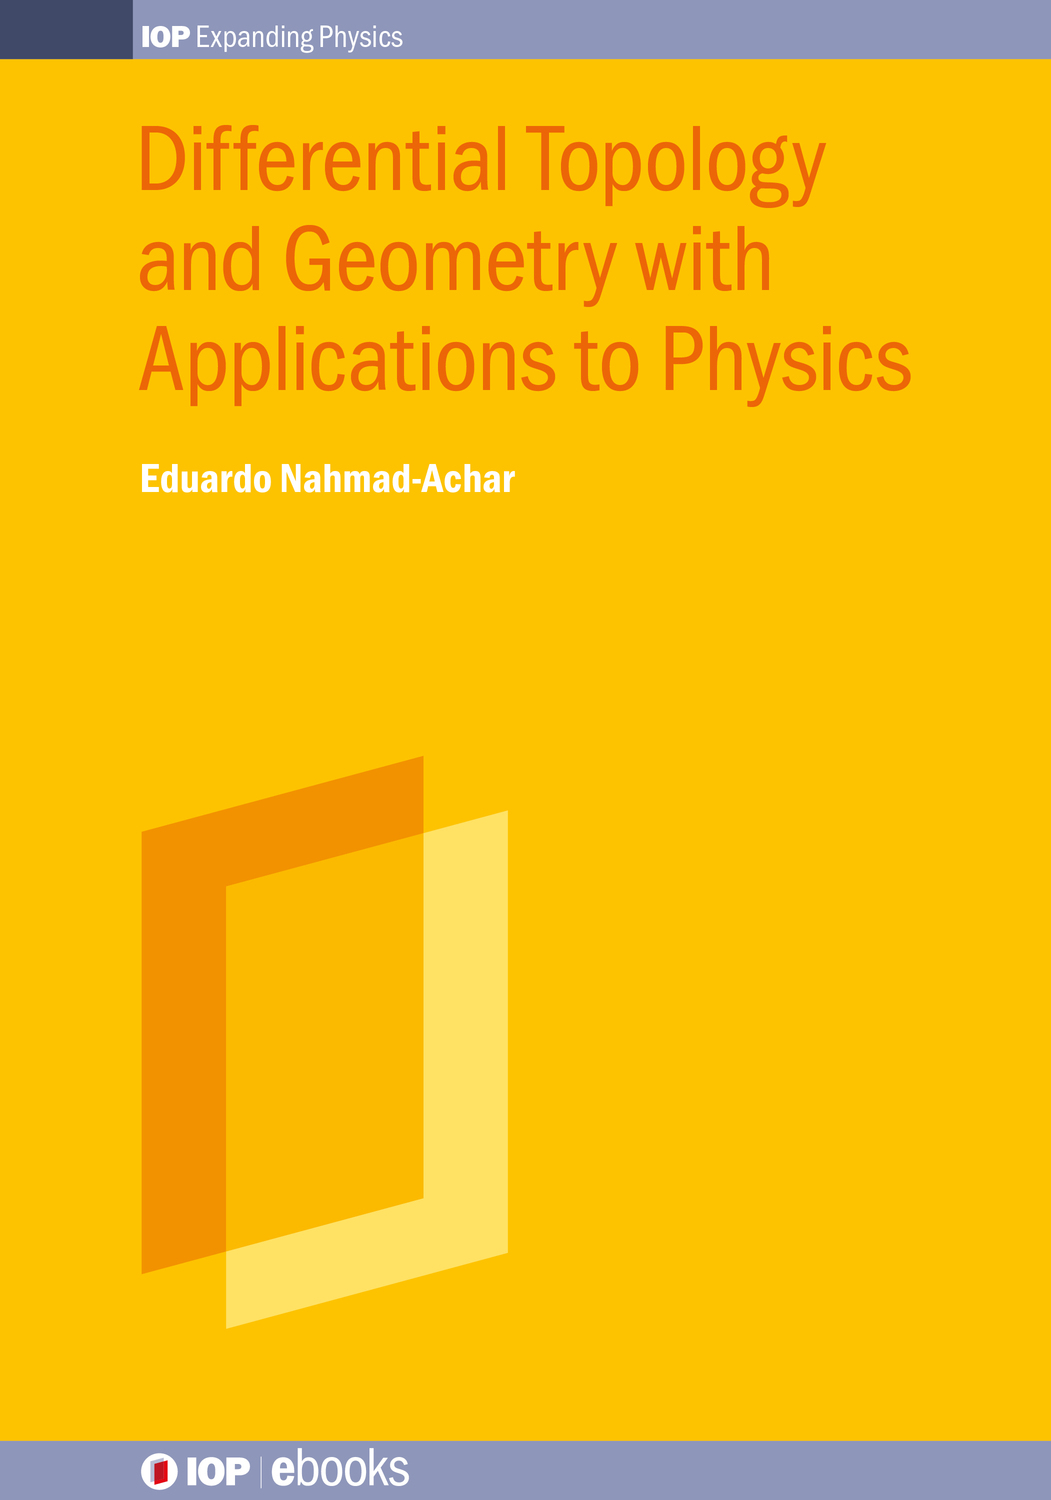 Differential Topology and Geometry with Applications to